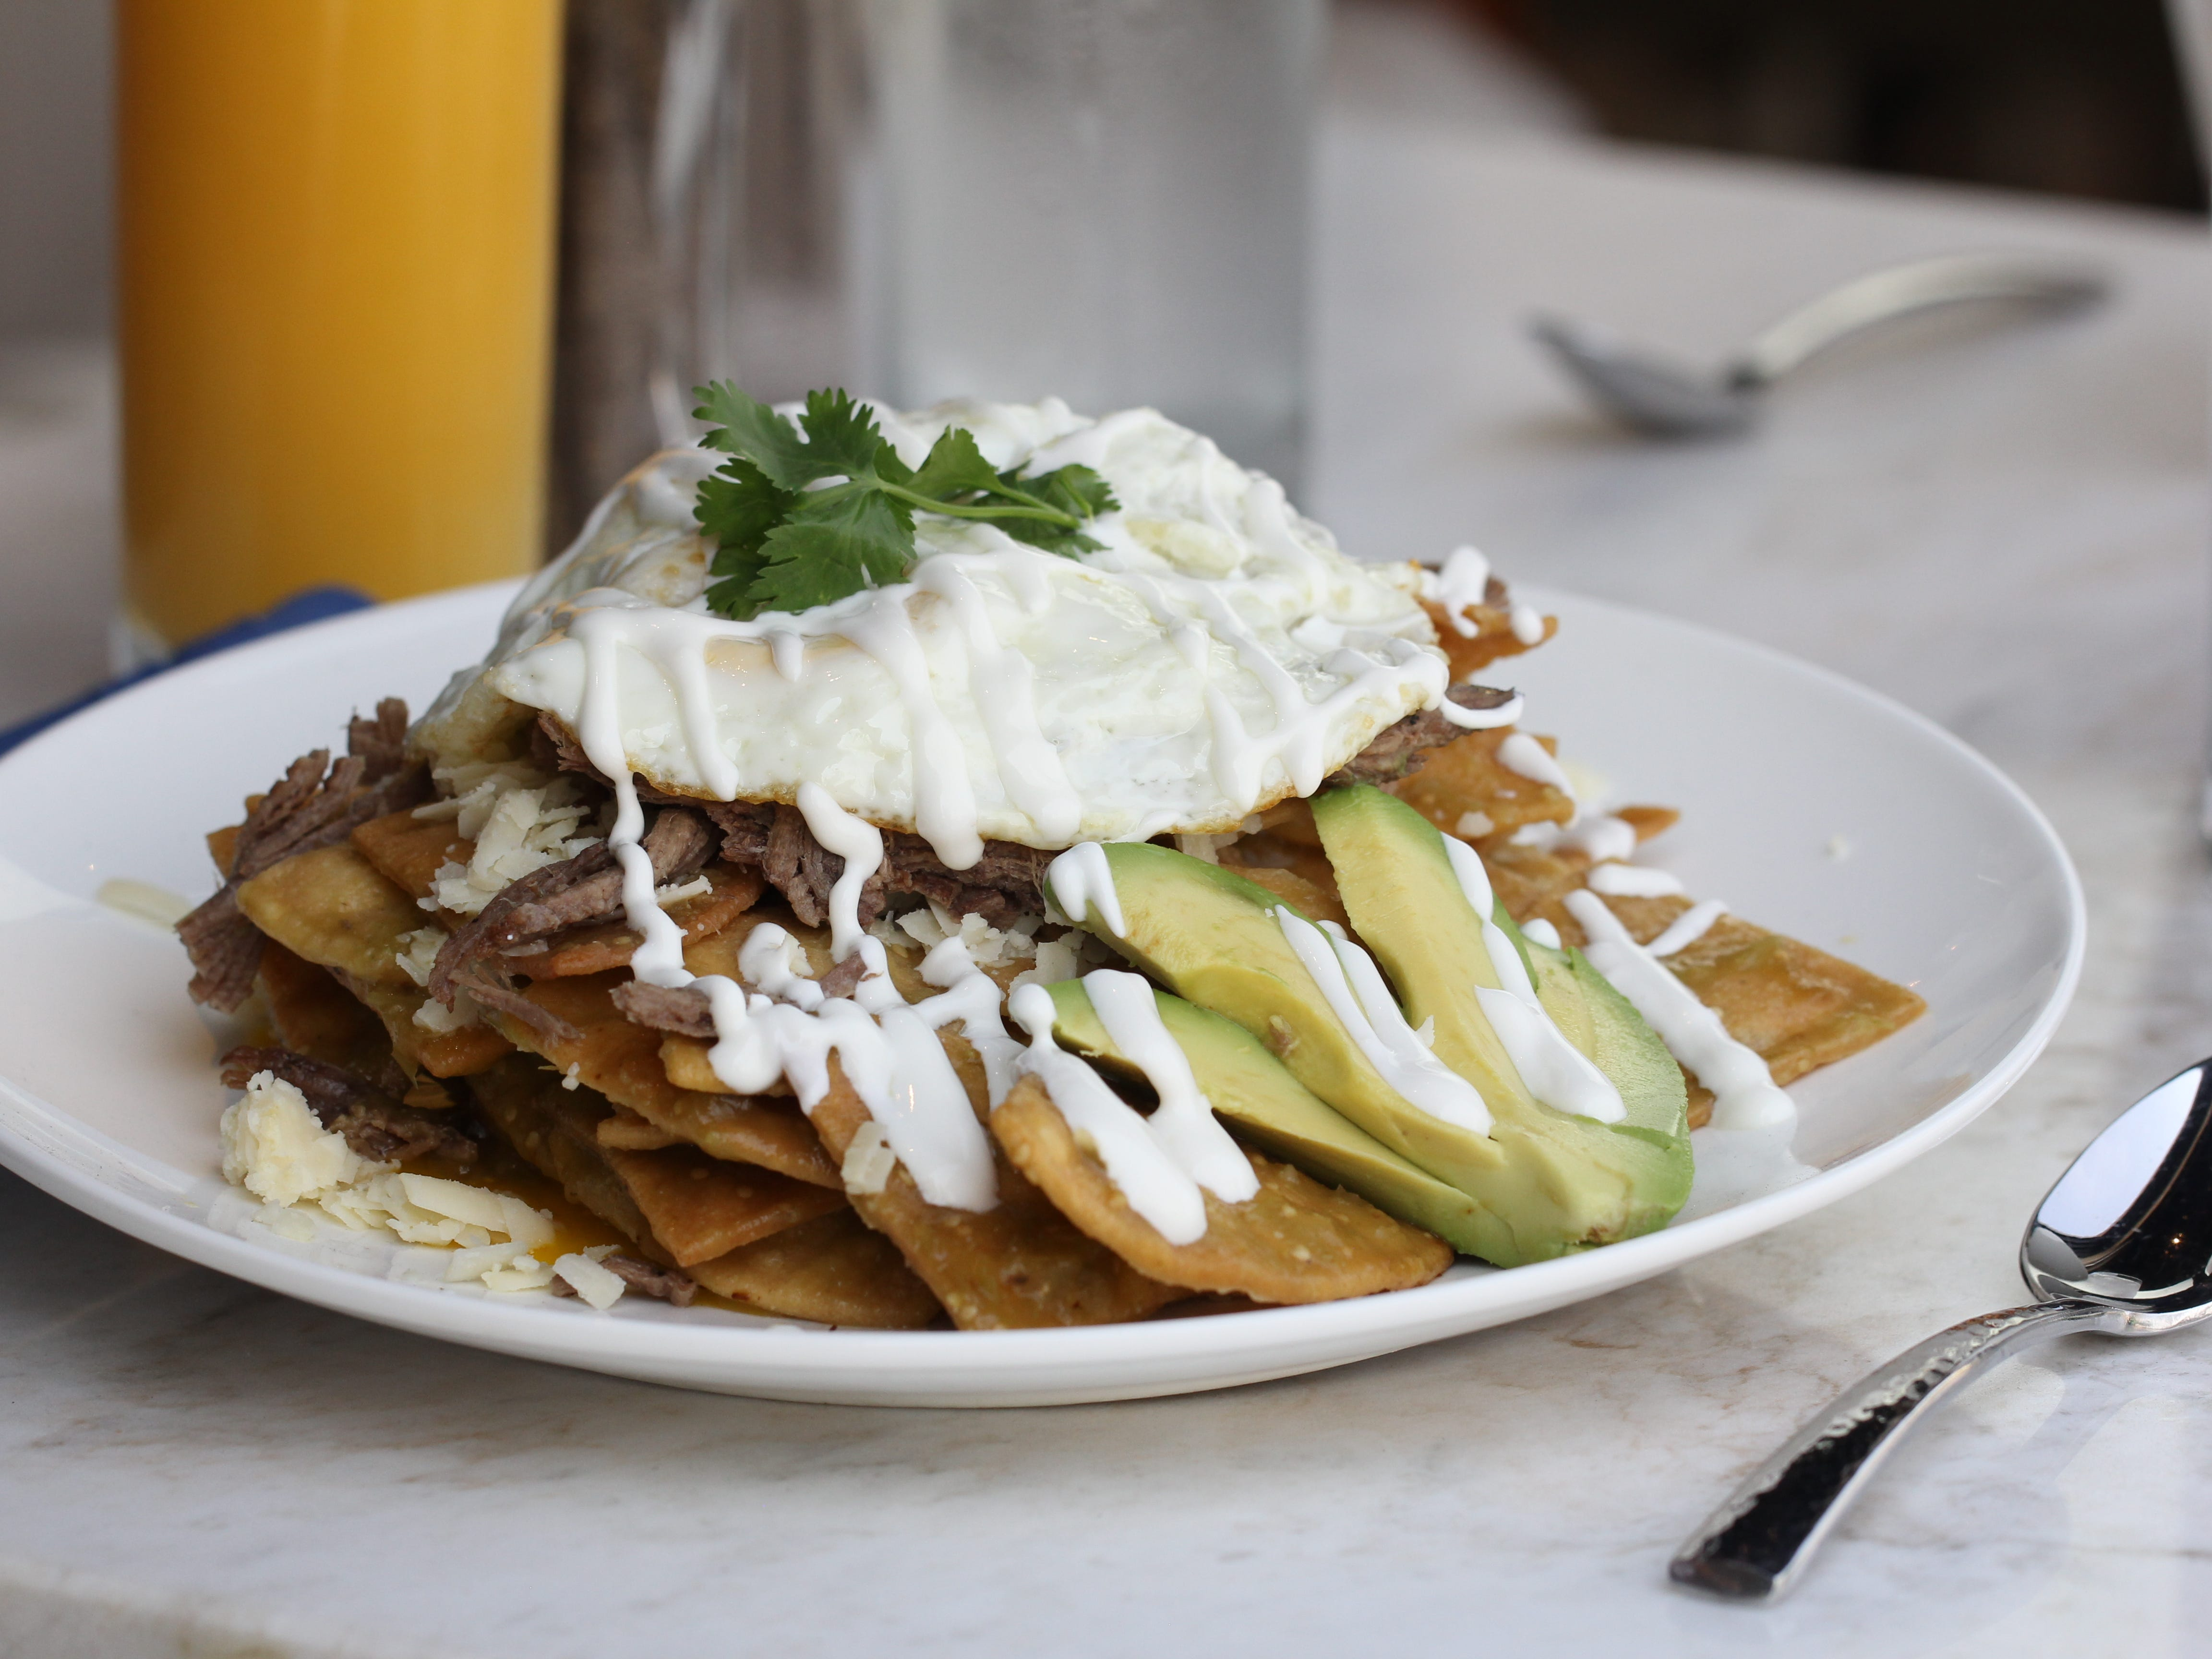 The chilaquiles at Dorian.